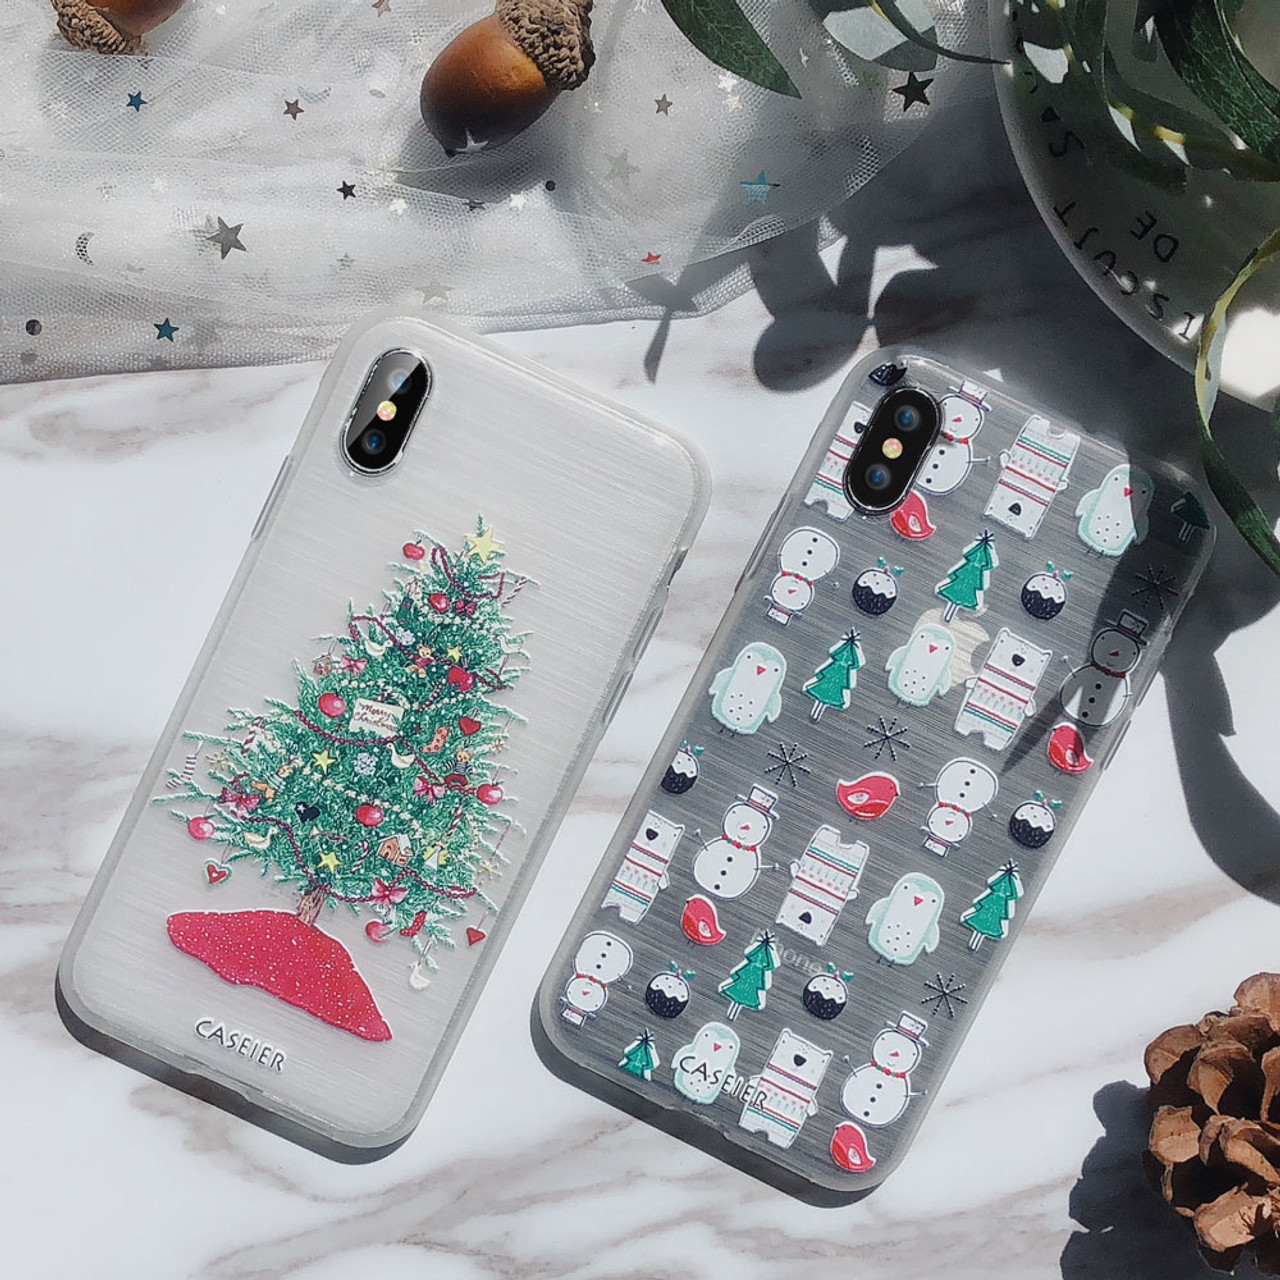 Christmas Phone Case Iphone 7.Caseier Girly Christmas Phone Case For Iphone 5 Se 6 6s 7 8 Plus X Cute Emboss Soft Tpu Covers For Iphone X Xs Max Xr 5s 7 Plus